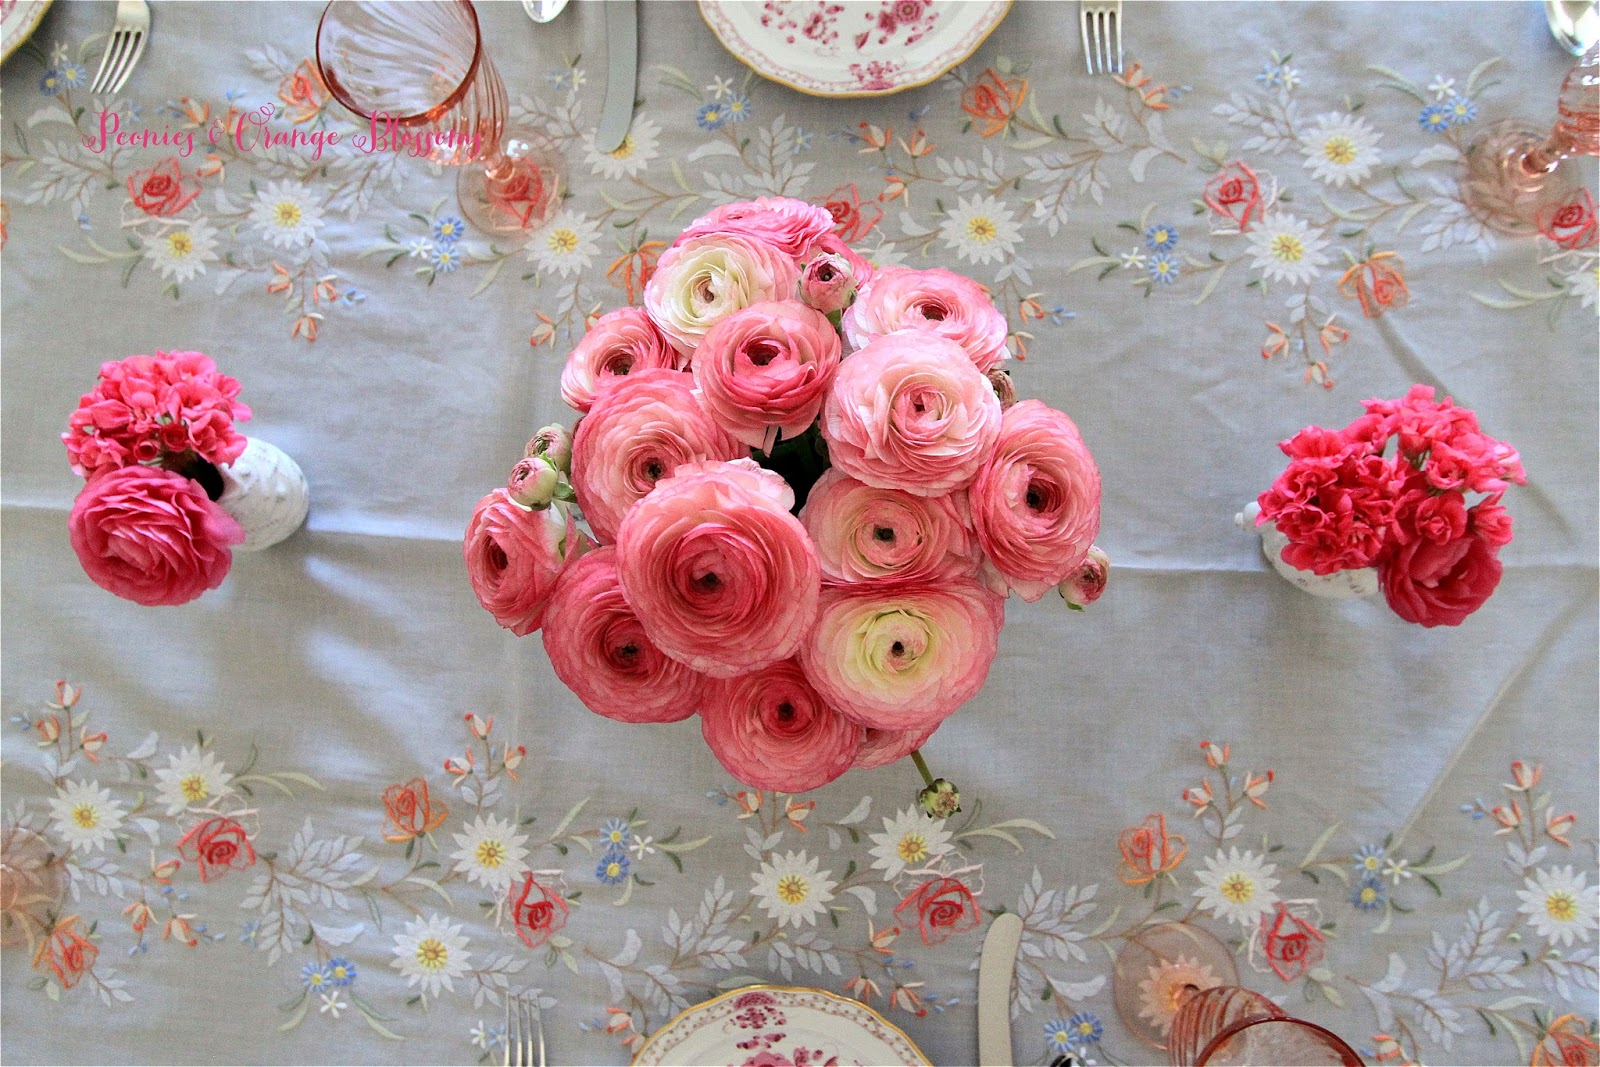 French table setting with pink ranunculus